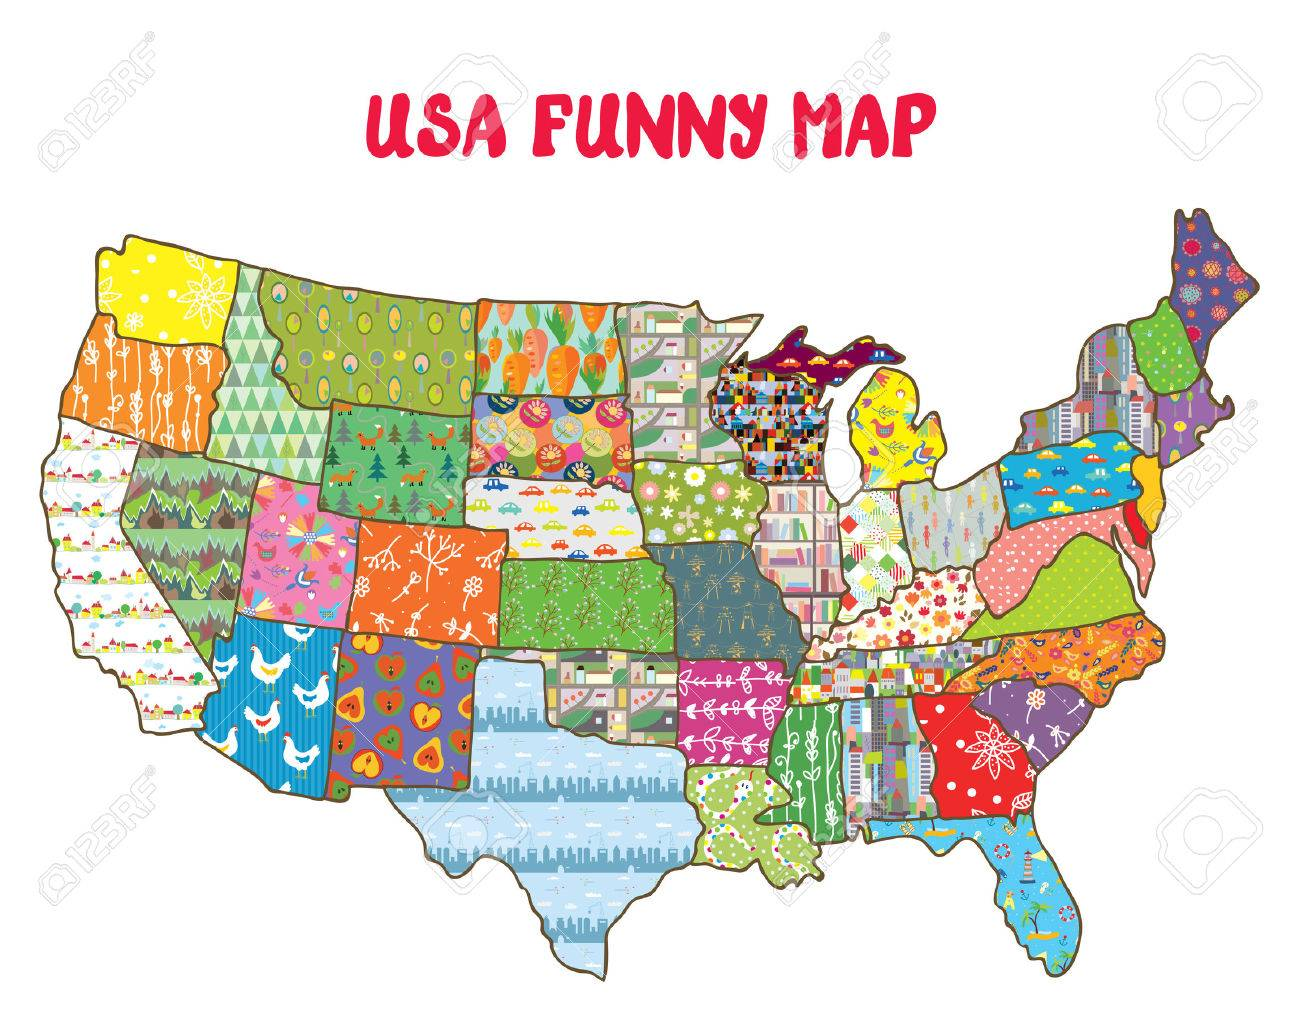 Funny United States Map.United States Funny Map With Patterns Design For Kids Royalty Free